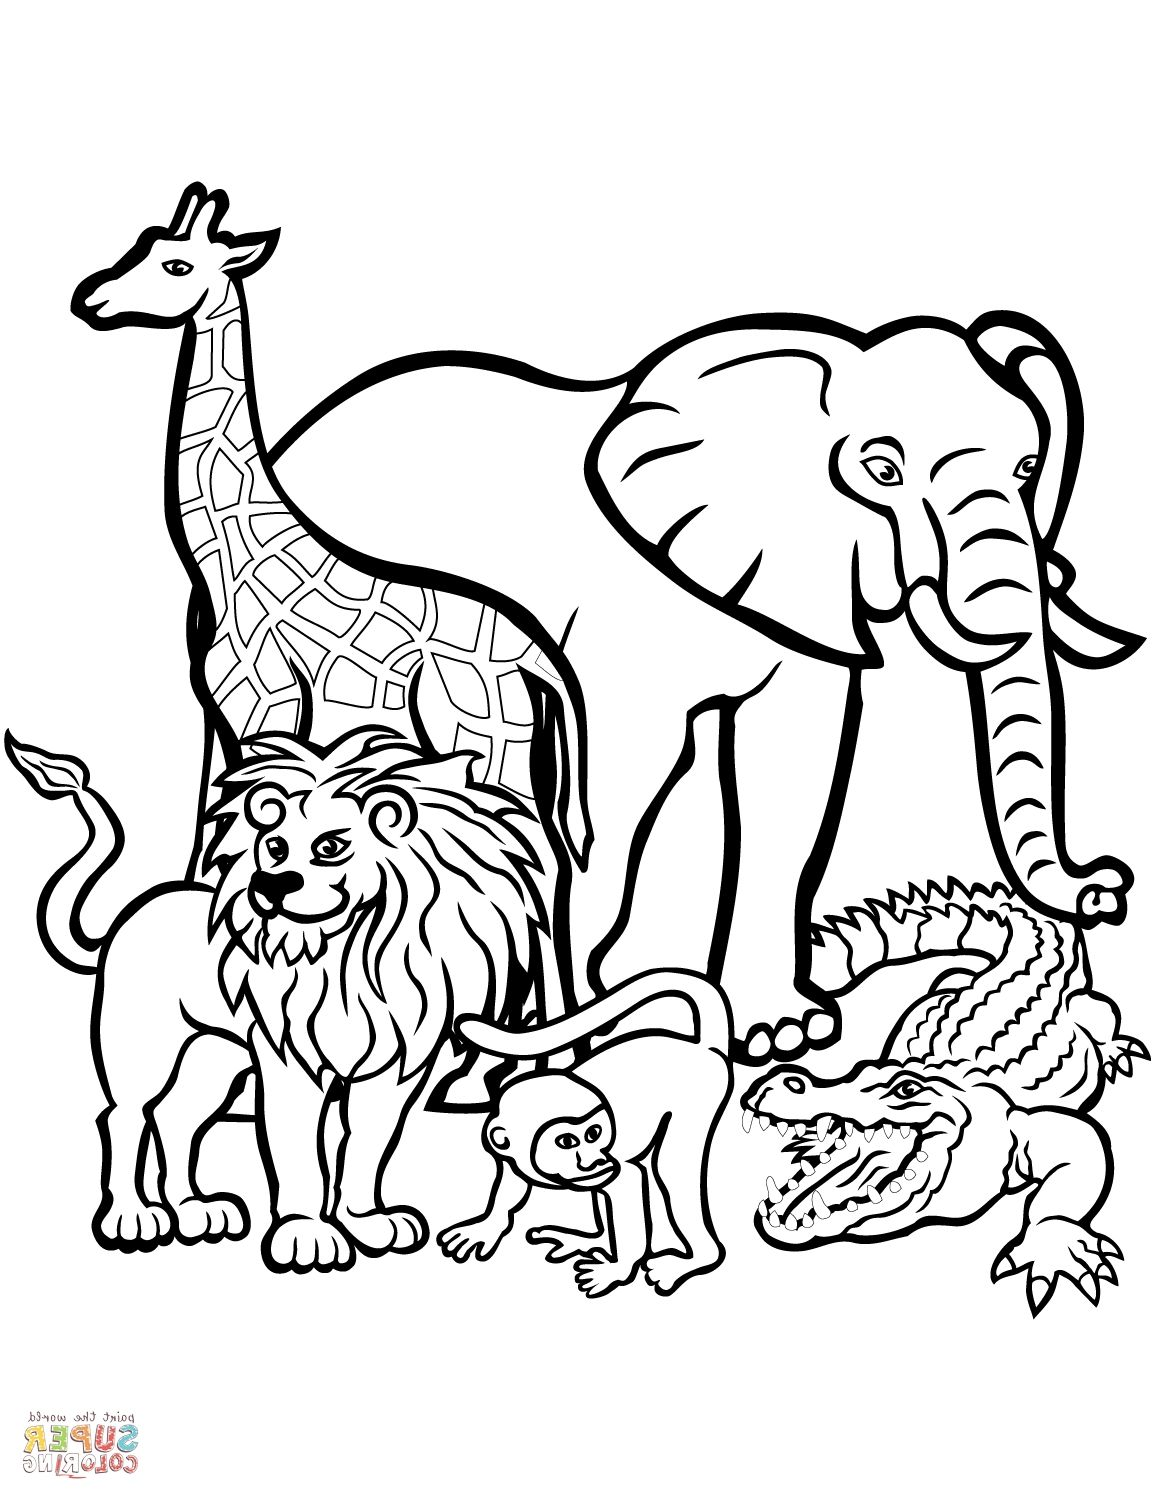 Free Animal Coloring Pages Zoo Coloring Pages Zoo Animal Coloring Pages Animal Coloring Pages